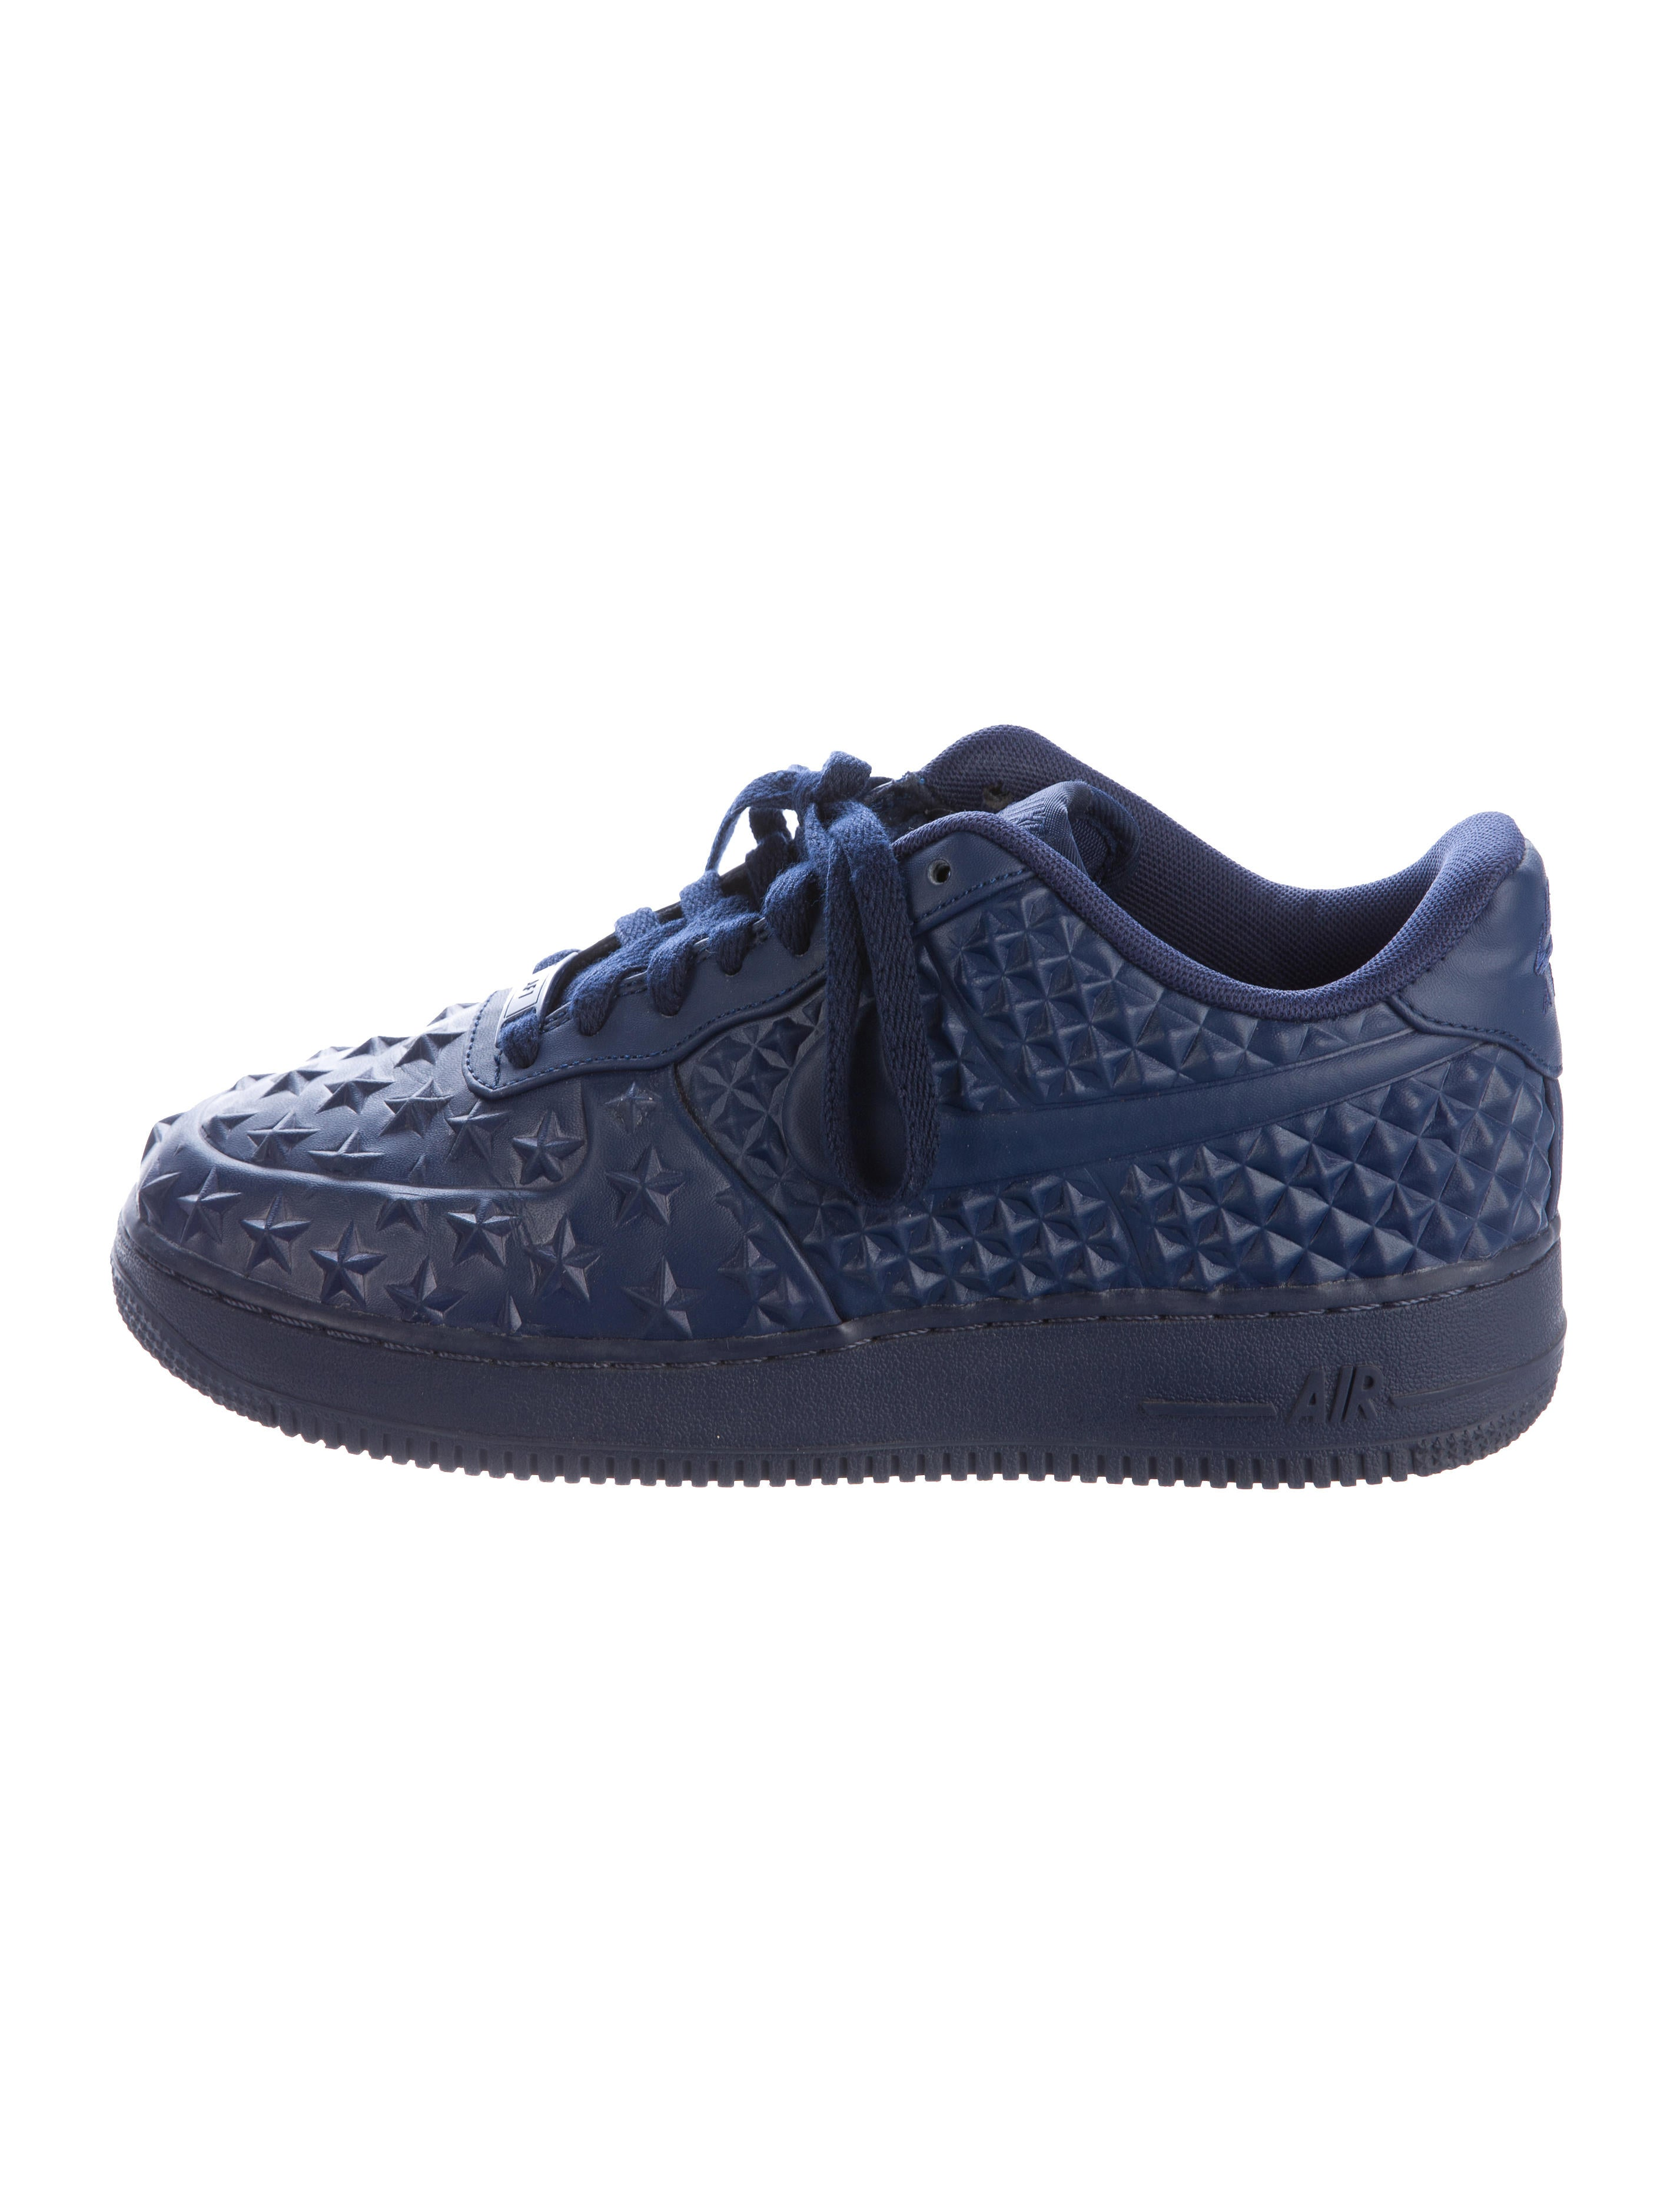 nike air force 1 independence day sneakers shoes. Black Bedroom Furniture Sets. Home Design Ideas